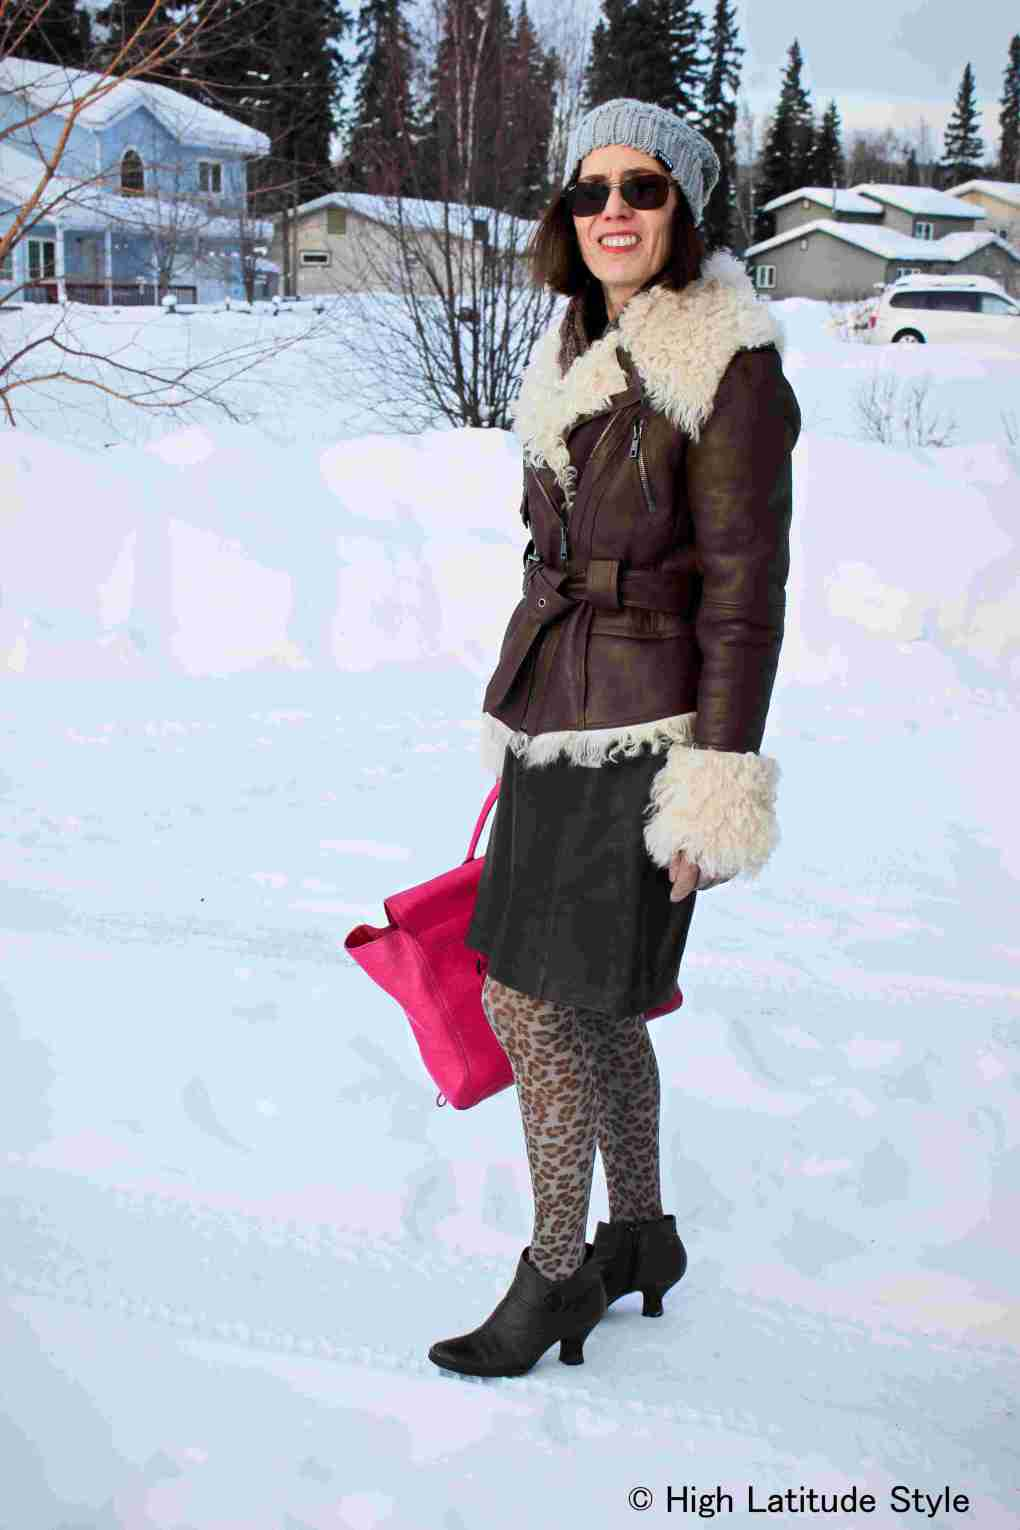 #fashionover50 woman in brown and gray outerwear with leopard print tights and fuchsia bag